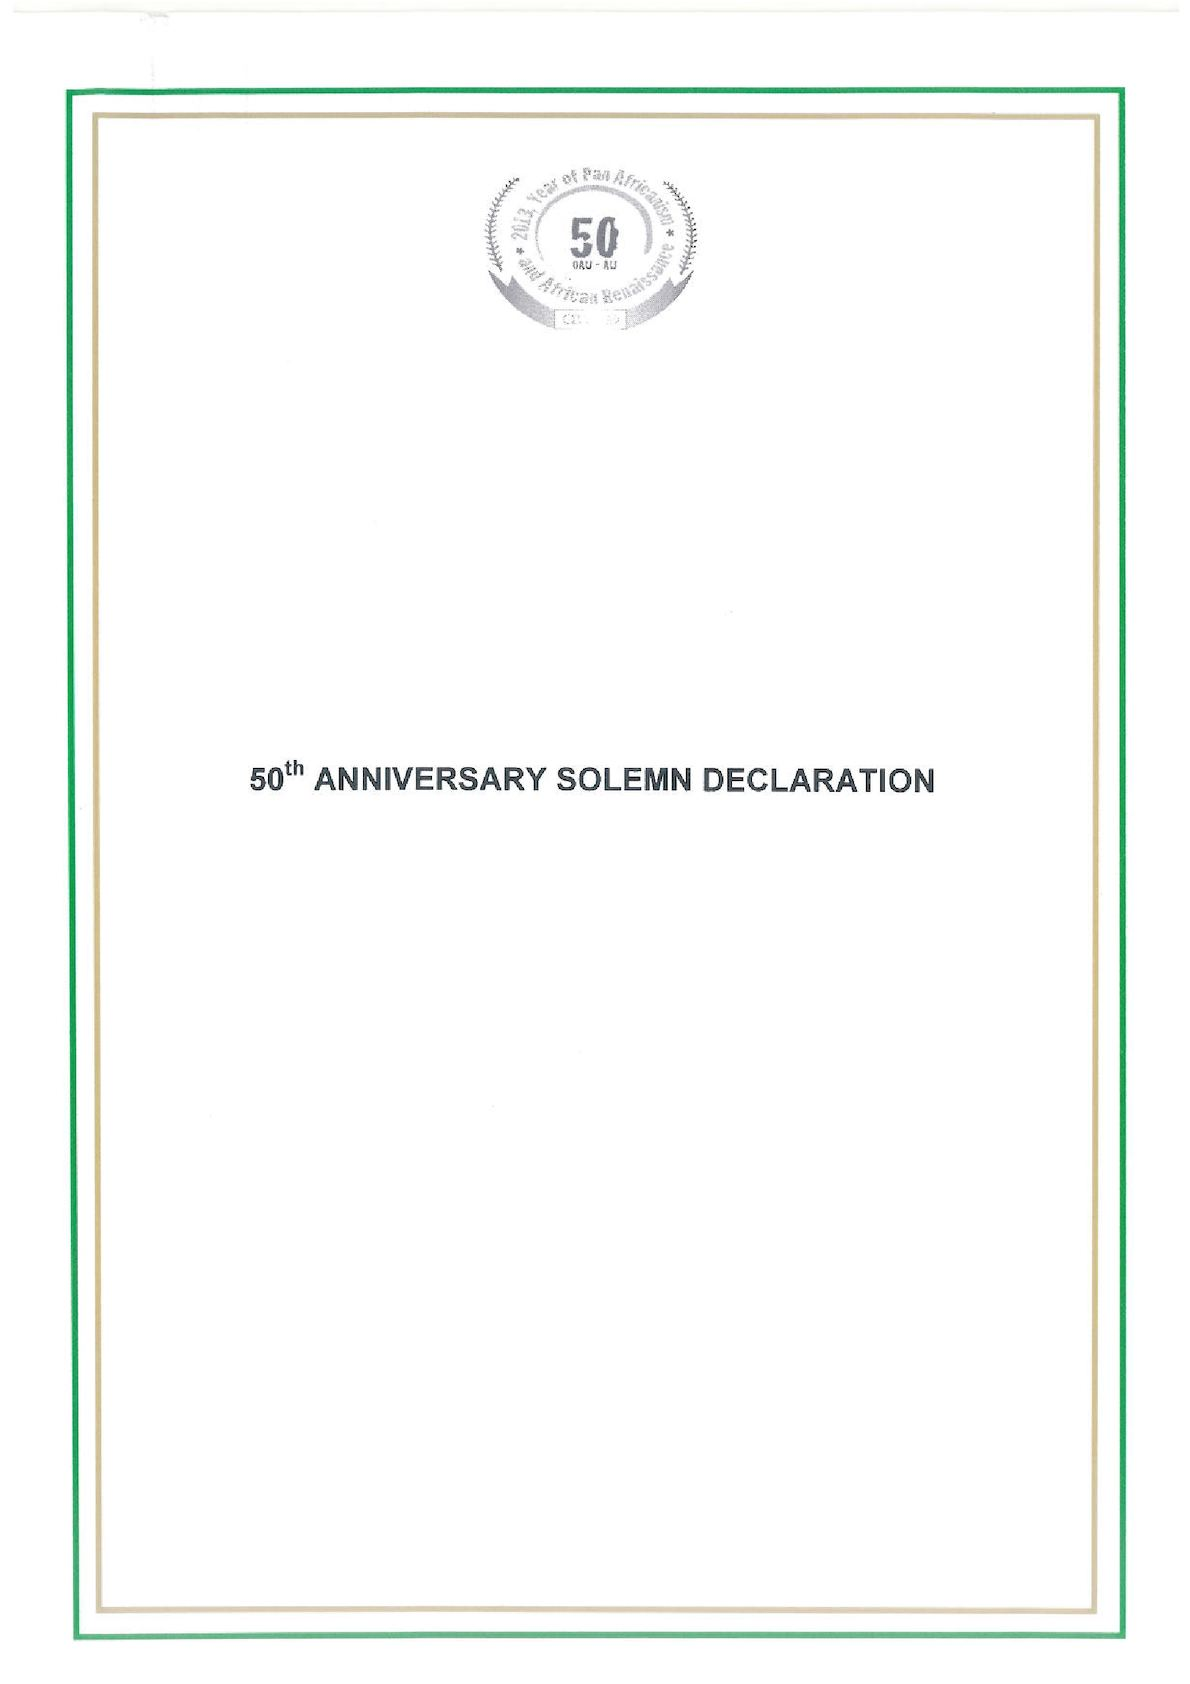 50th Anniversary Solemn Declaration